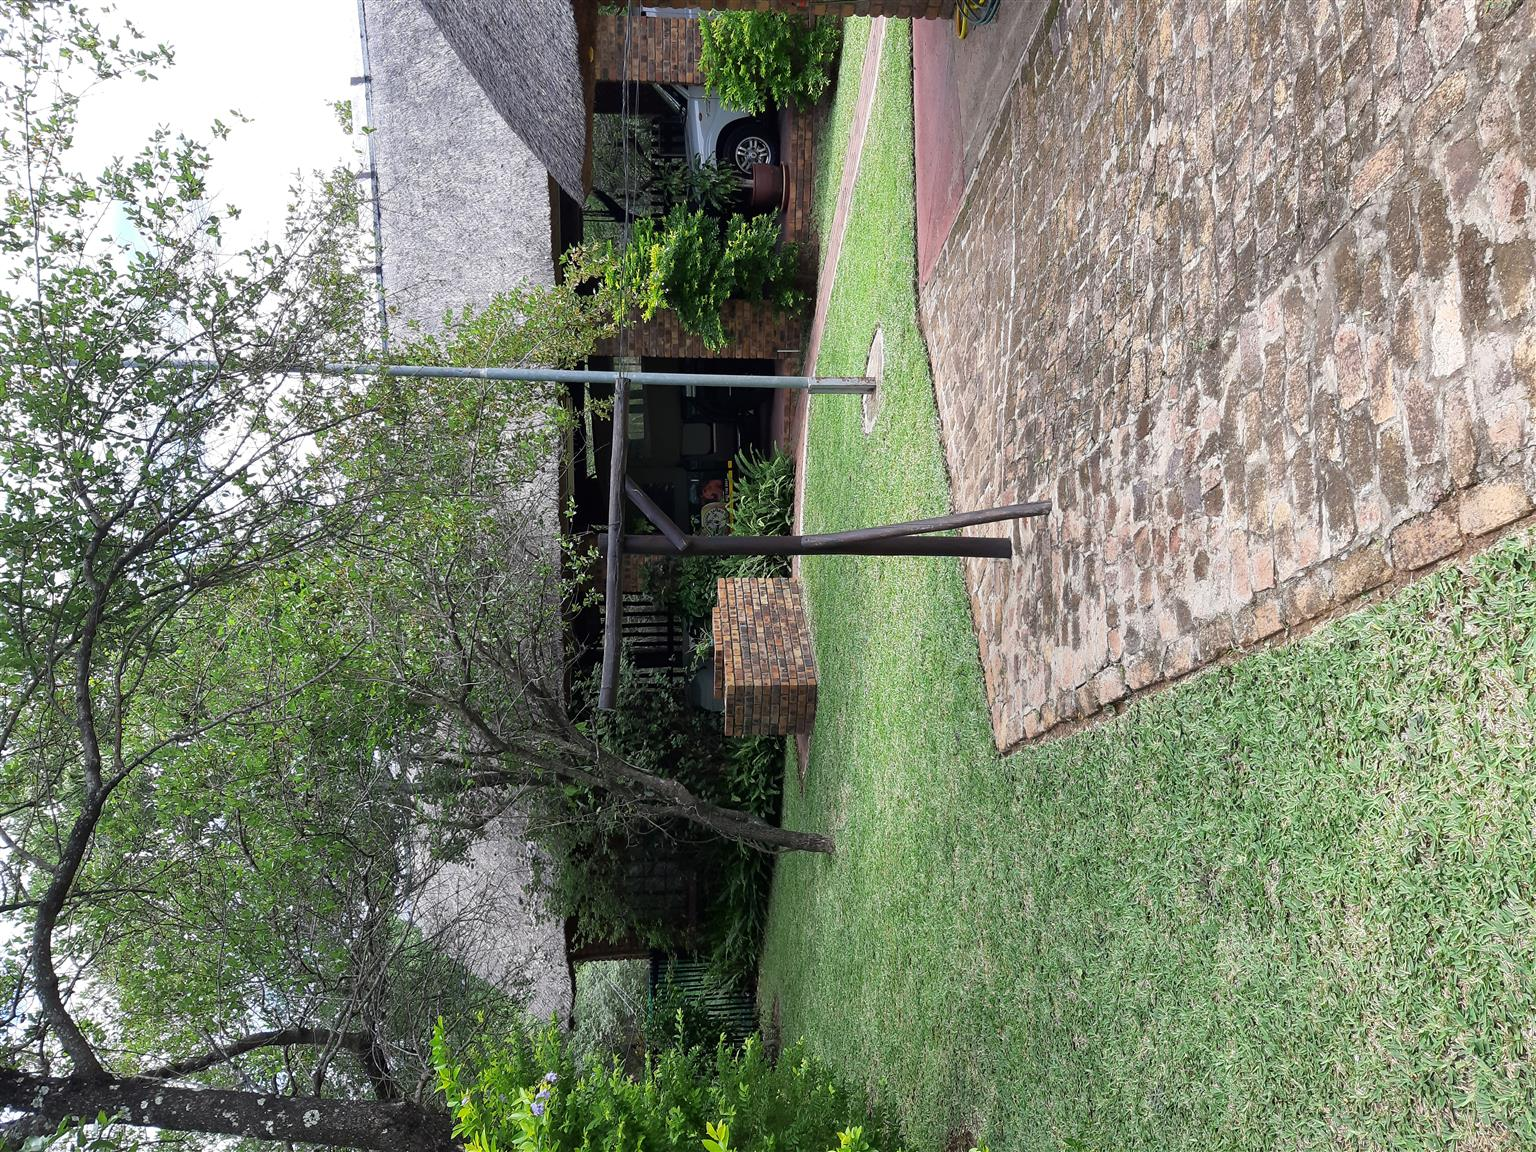 This is a jewel property looking into Kruger National Park